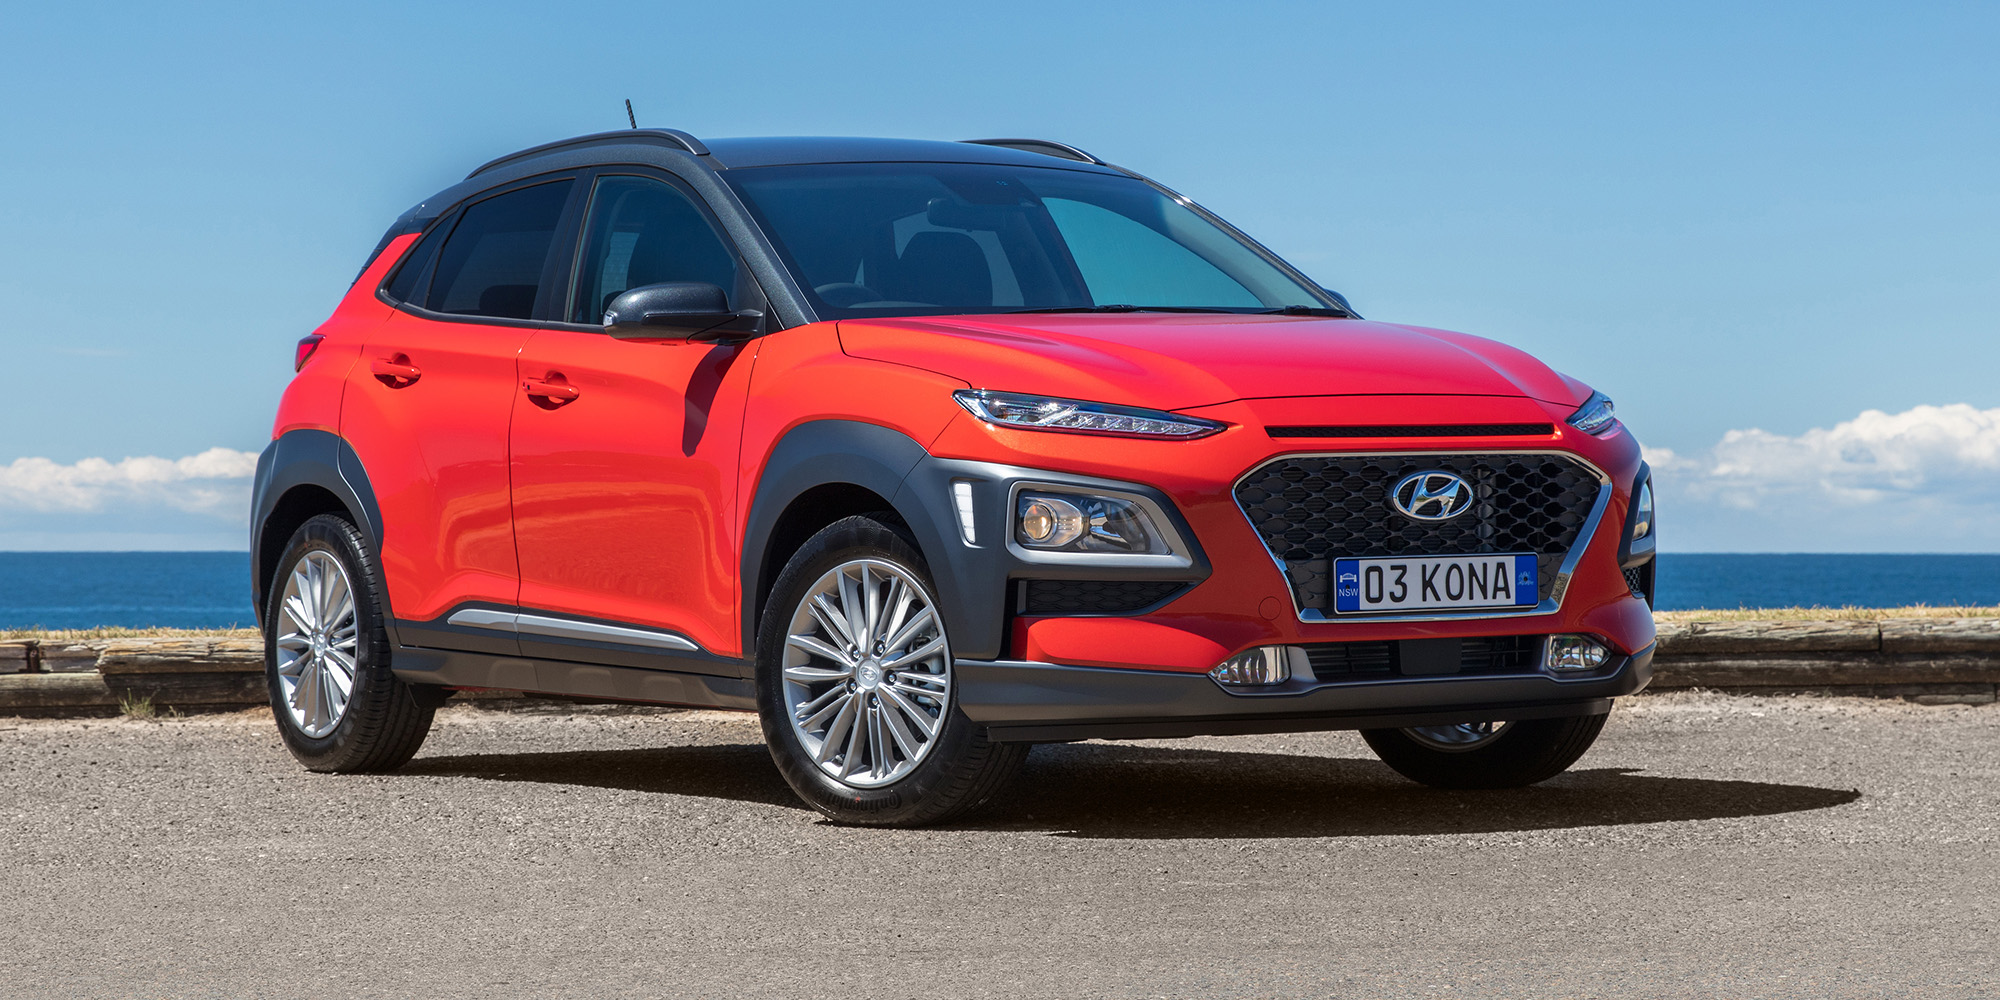 Mazda Cx 5 Elite >> 2018 Hyundai Kona pricing and specs - Photos (1 of 99)